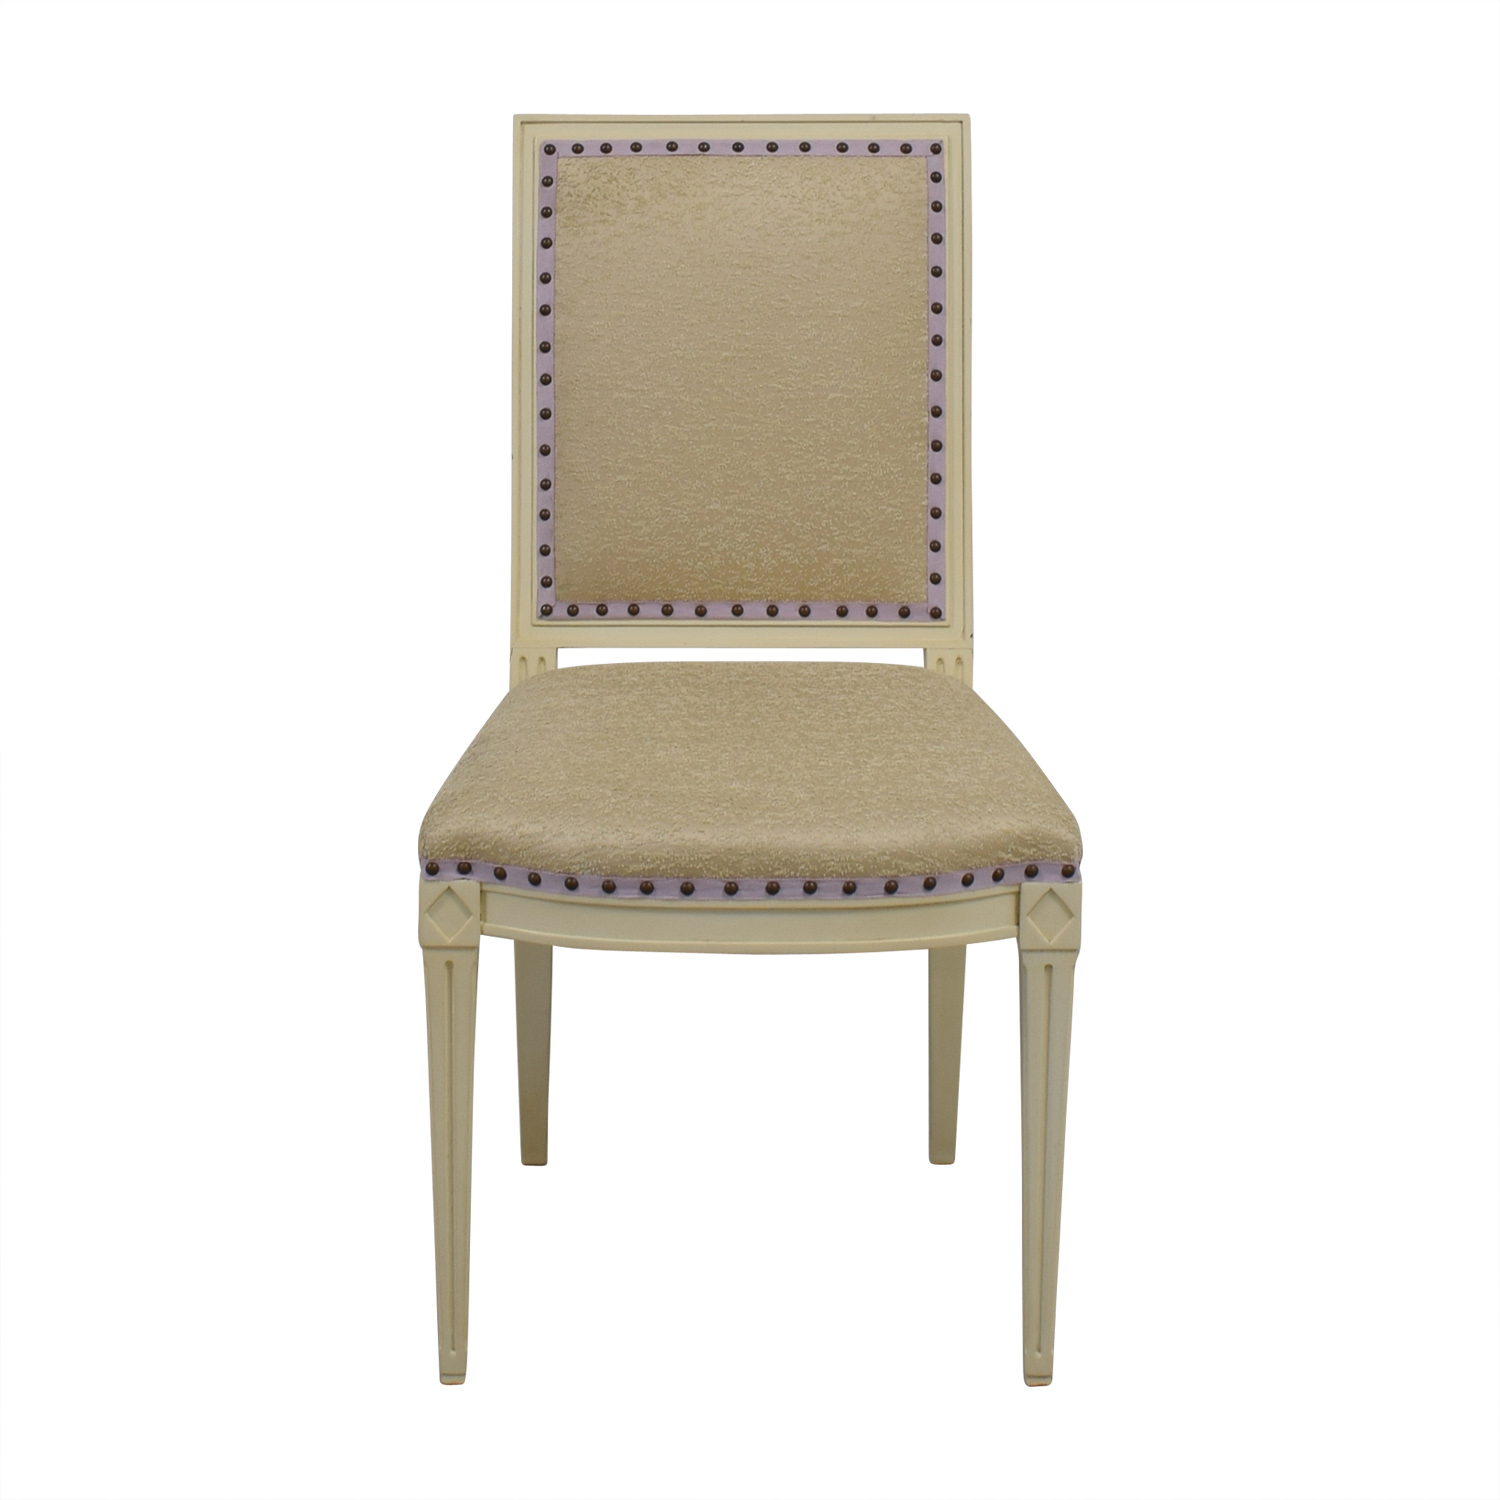 Custom Nailhead Upholstered Desk Chair on sale